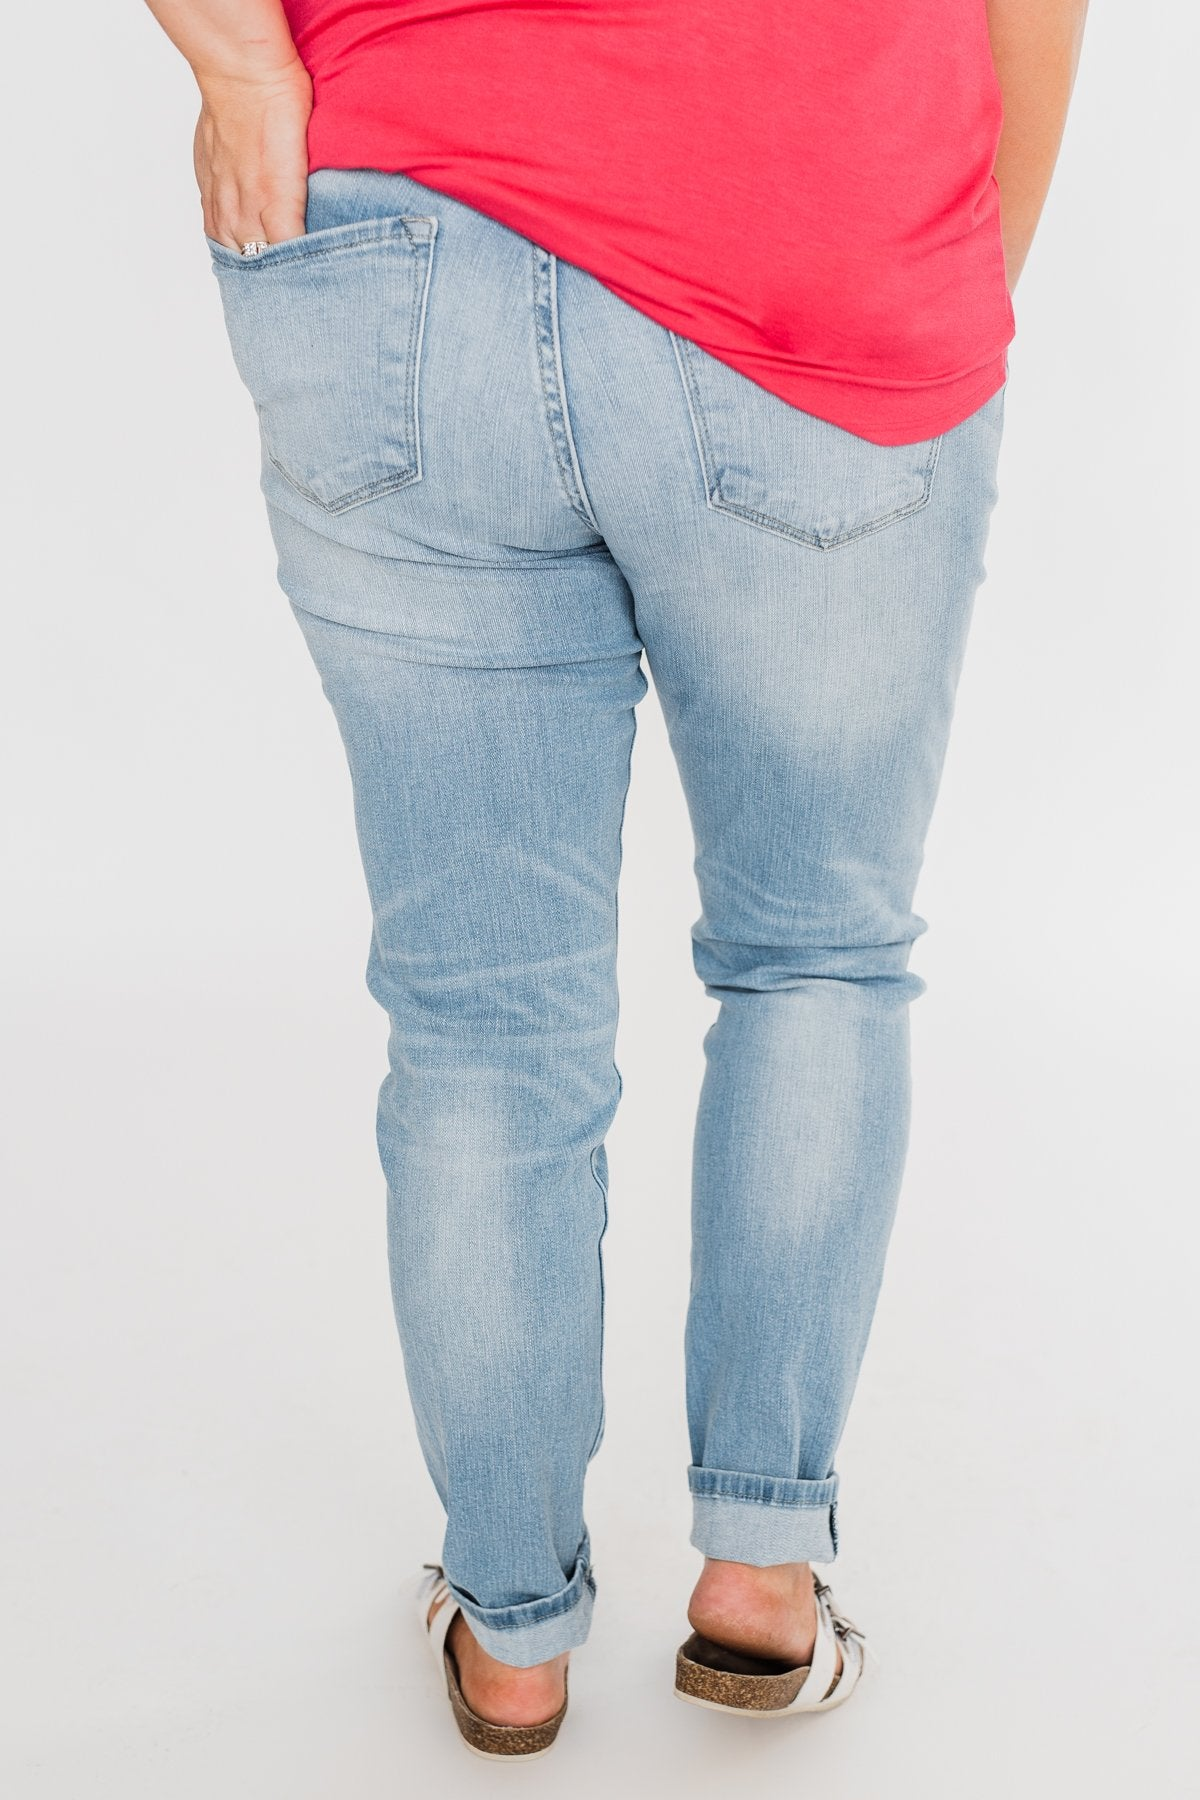 KanCan Skinny Jeans- Evelyn Wash